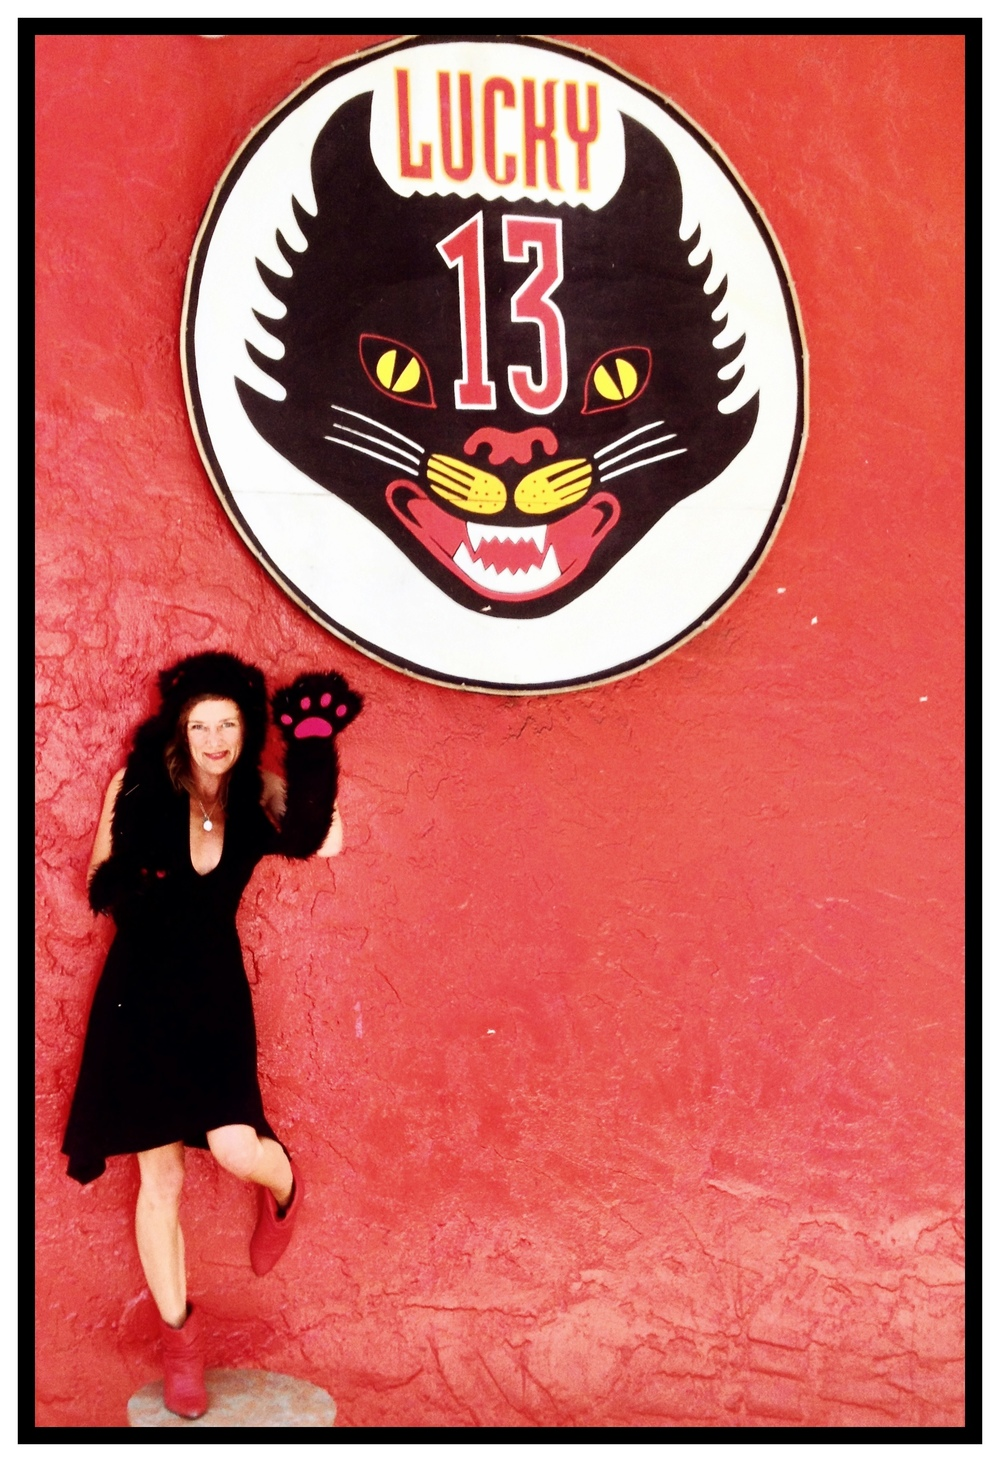 Lucky 13 bar in San Francisco, 2013